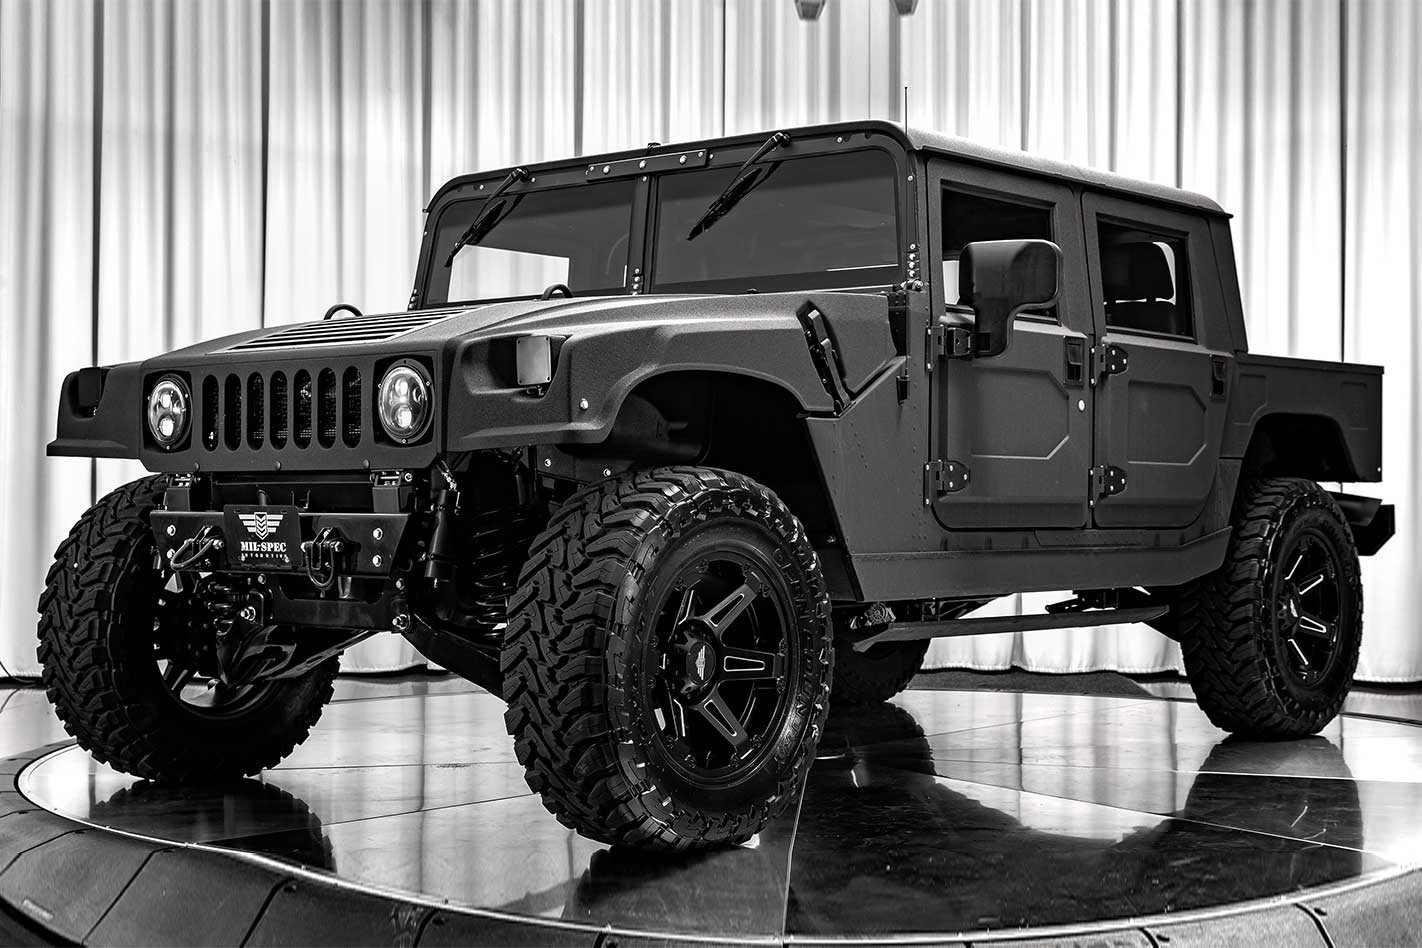 2019 Hummer H1 Price, Concept, Specs >> 2019 Hummer H1 Price Concept Specs Upcoming New Car Release 2020